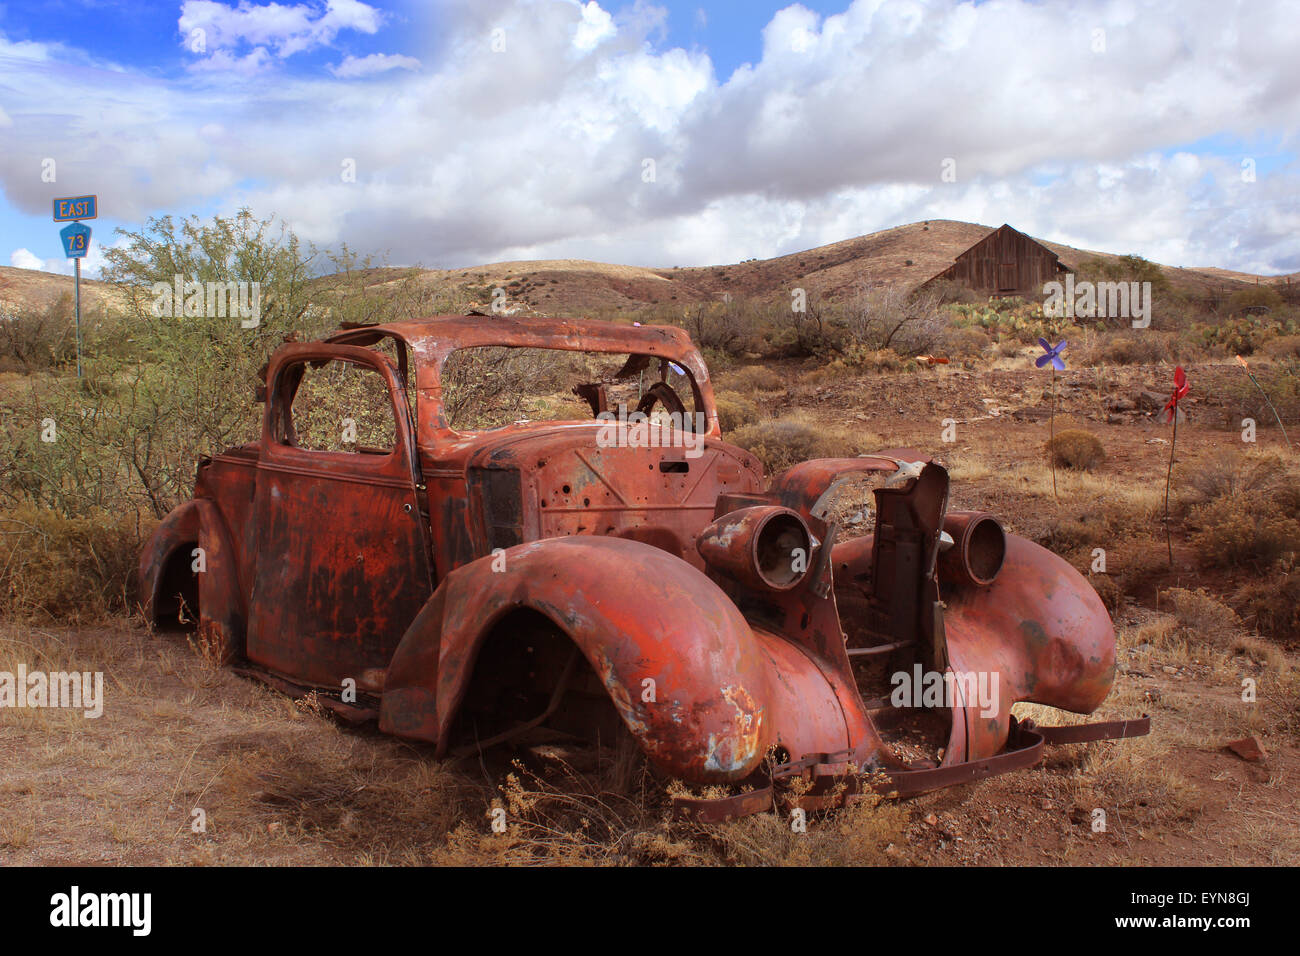 Old car rusting in Desert Landscape with Barn in Background - Stock Image